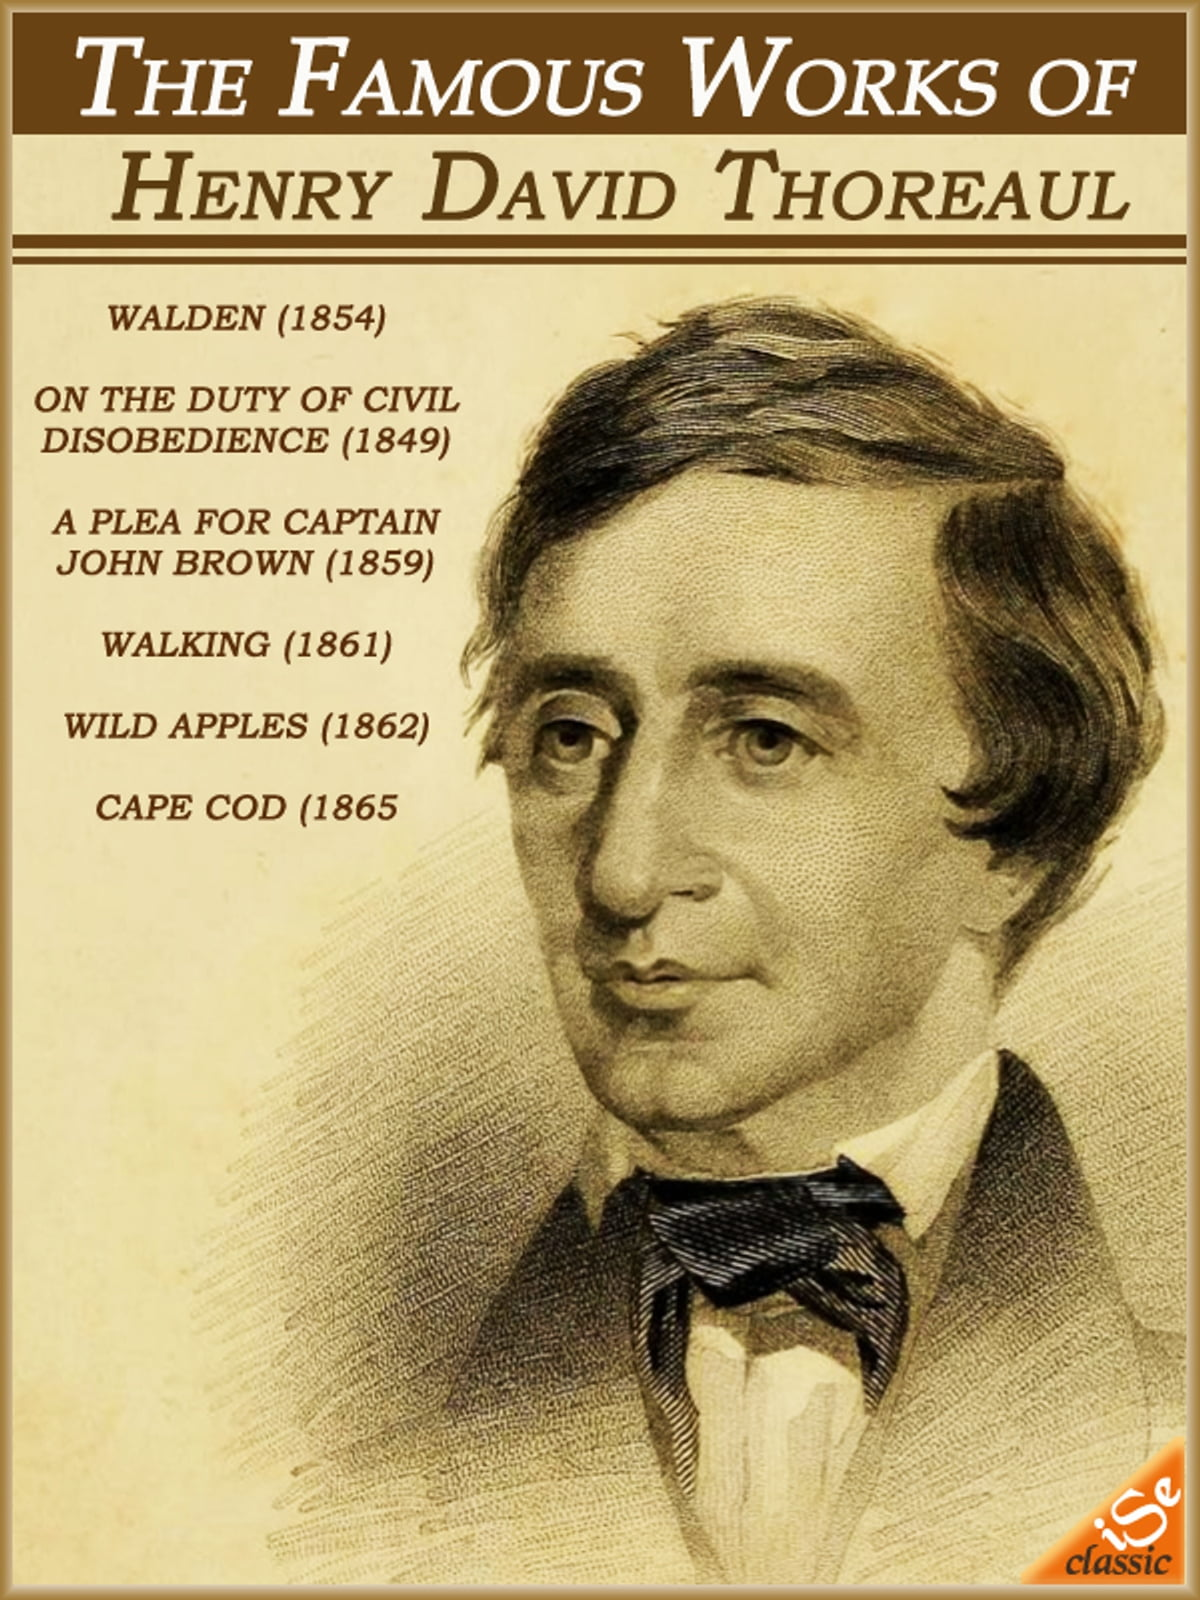 civil disobedience and other essays primary sources civil  the famous works of henry david thoreau walden civil the famous works of henry david thoreau civil disobedience thoreau essay